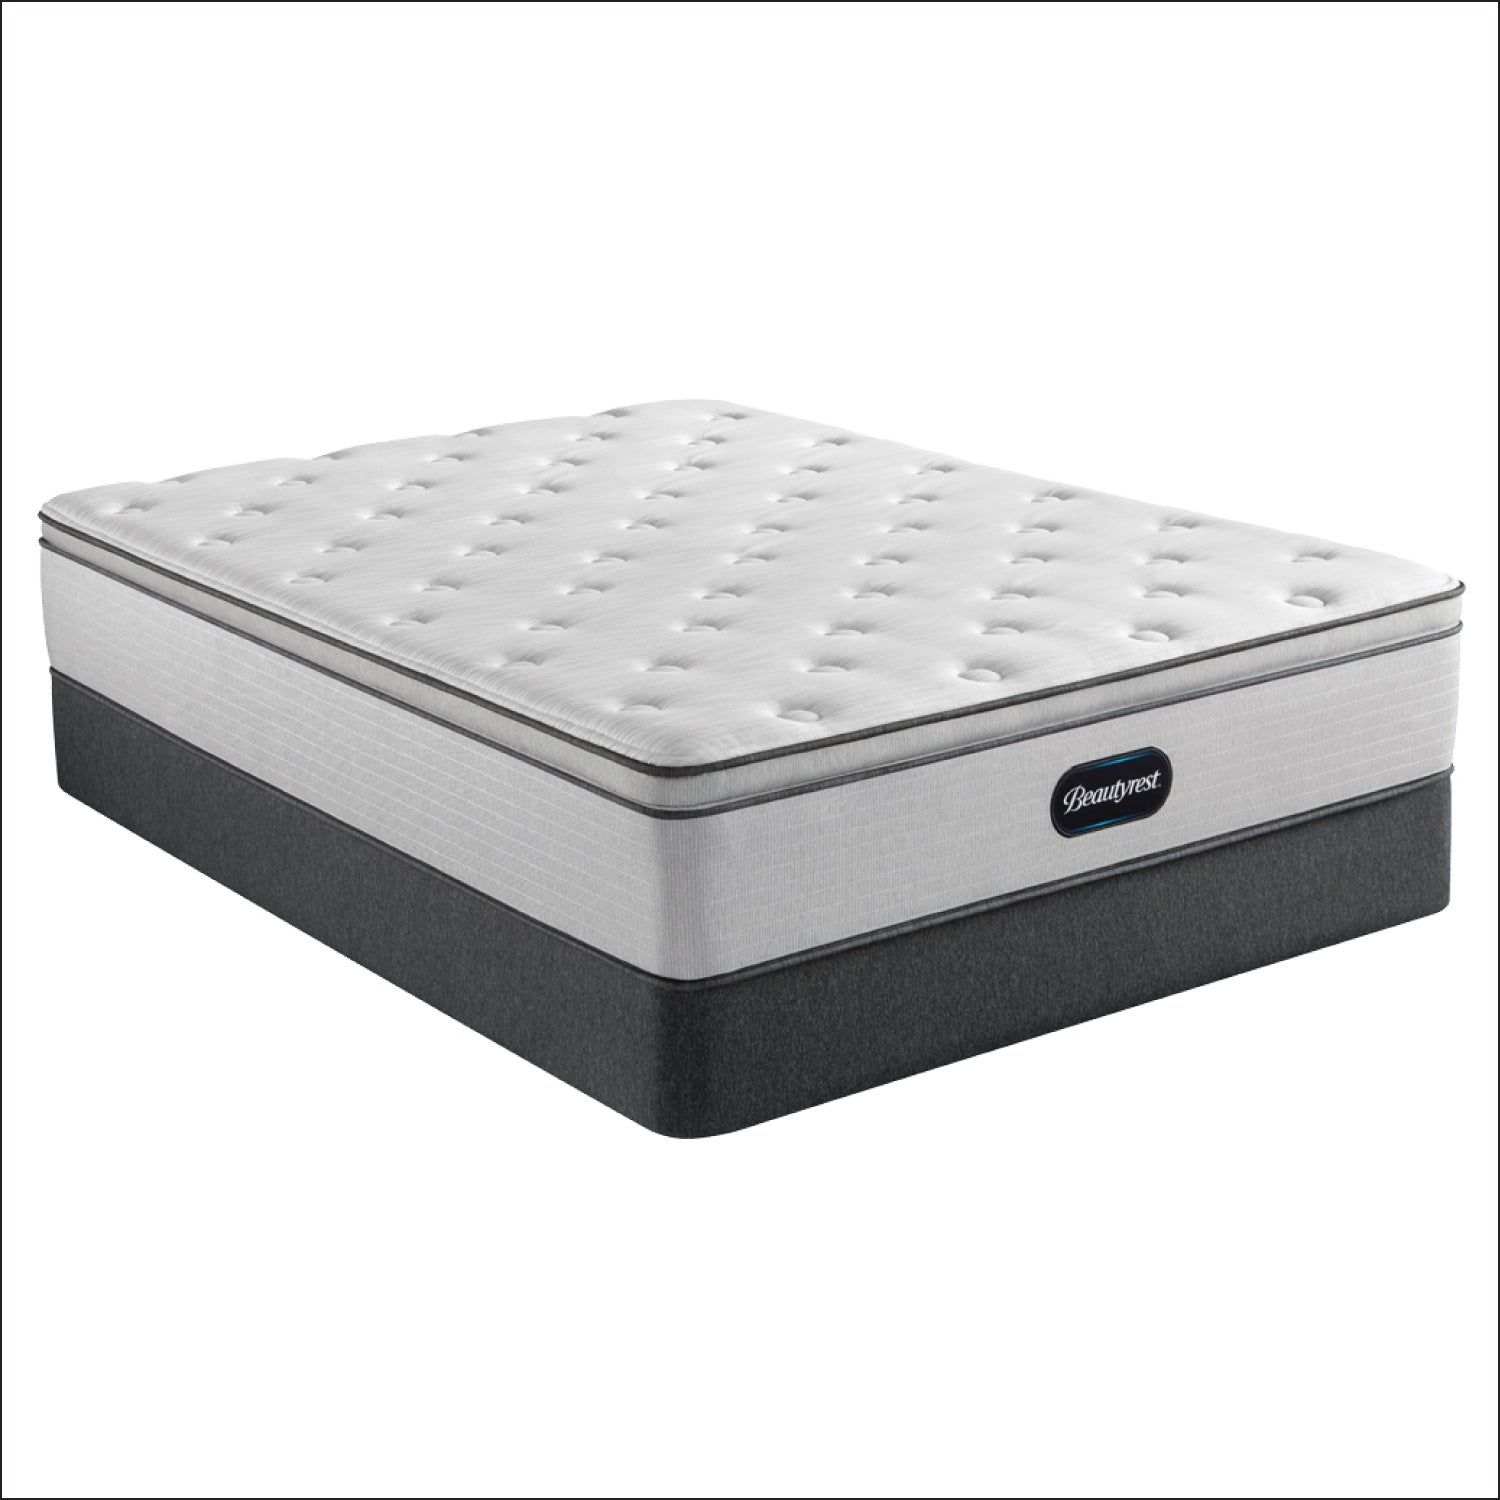 "Beautyrest 13.5"" BR800 Plush Pillow Top Mattress"